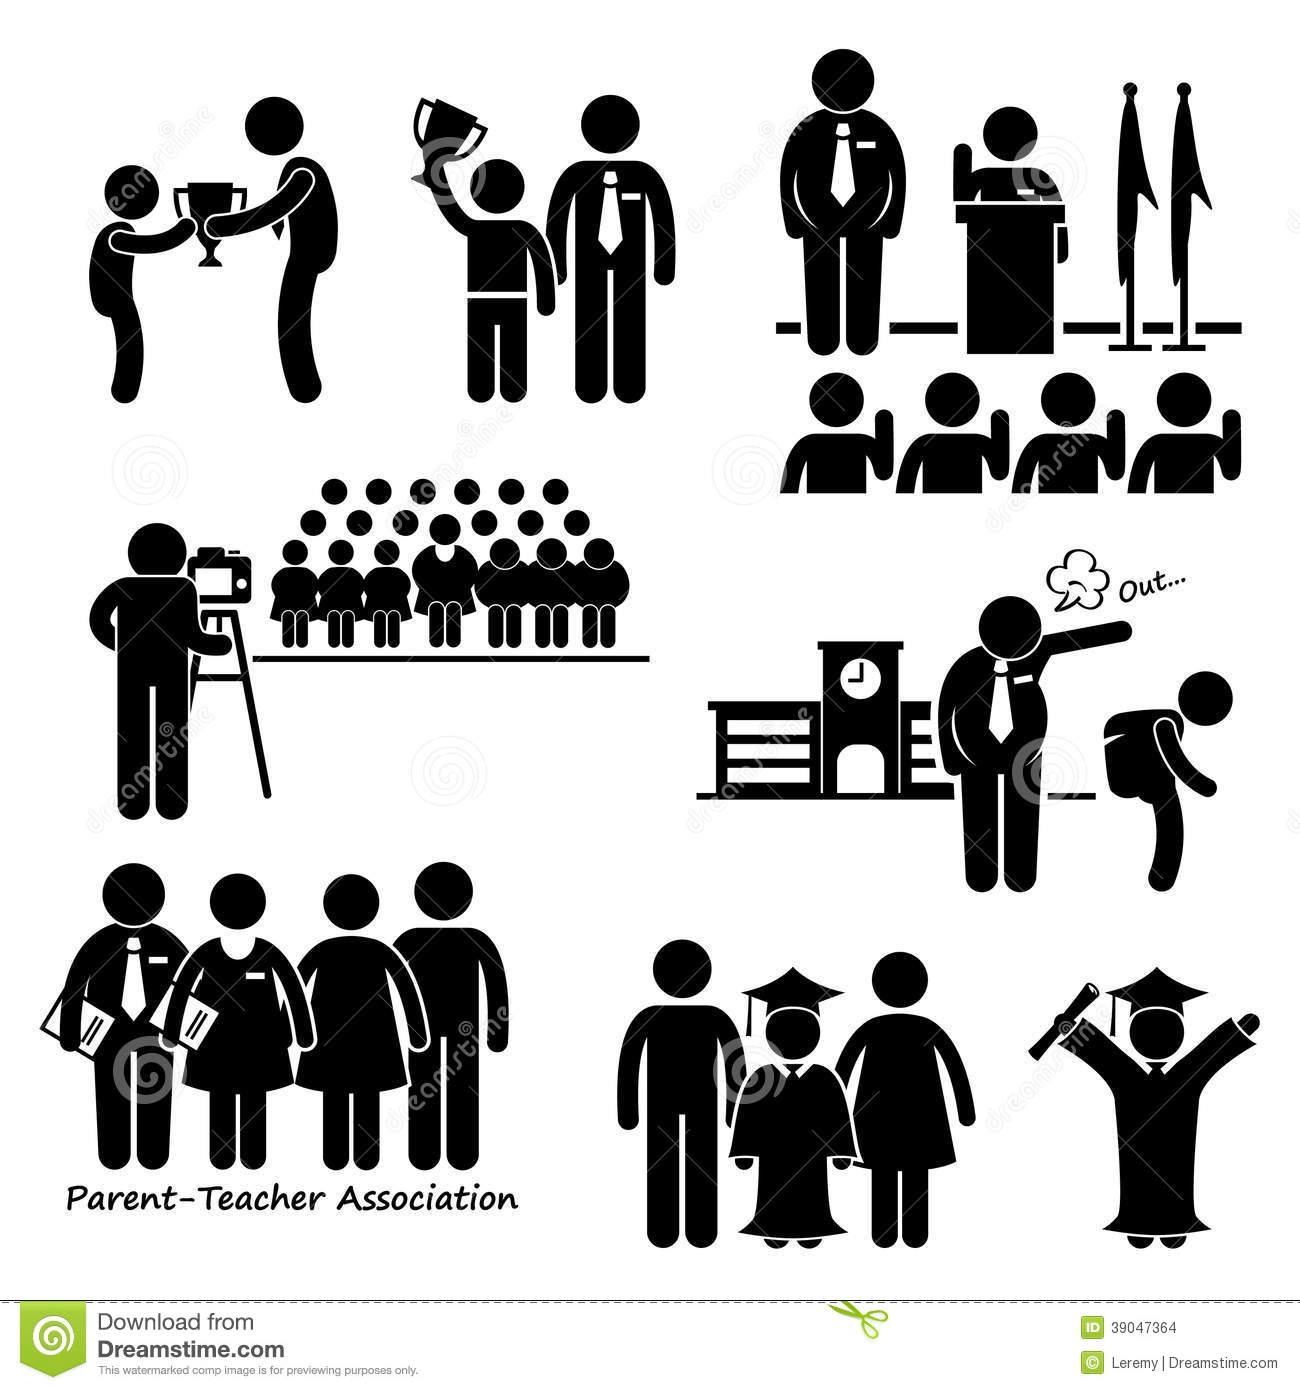 Event outdoor clipart - Clipground